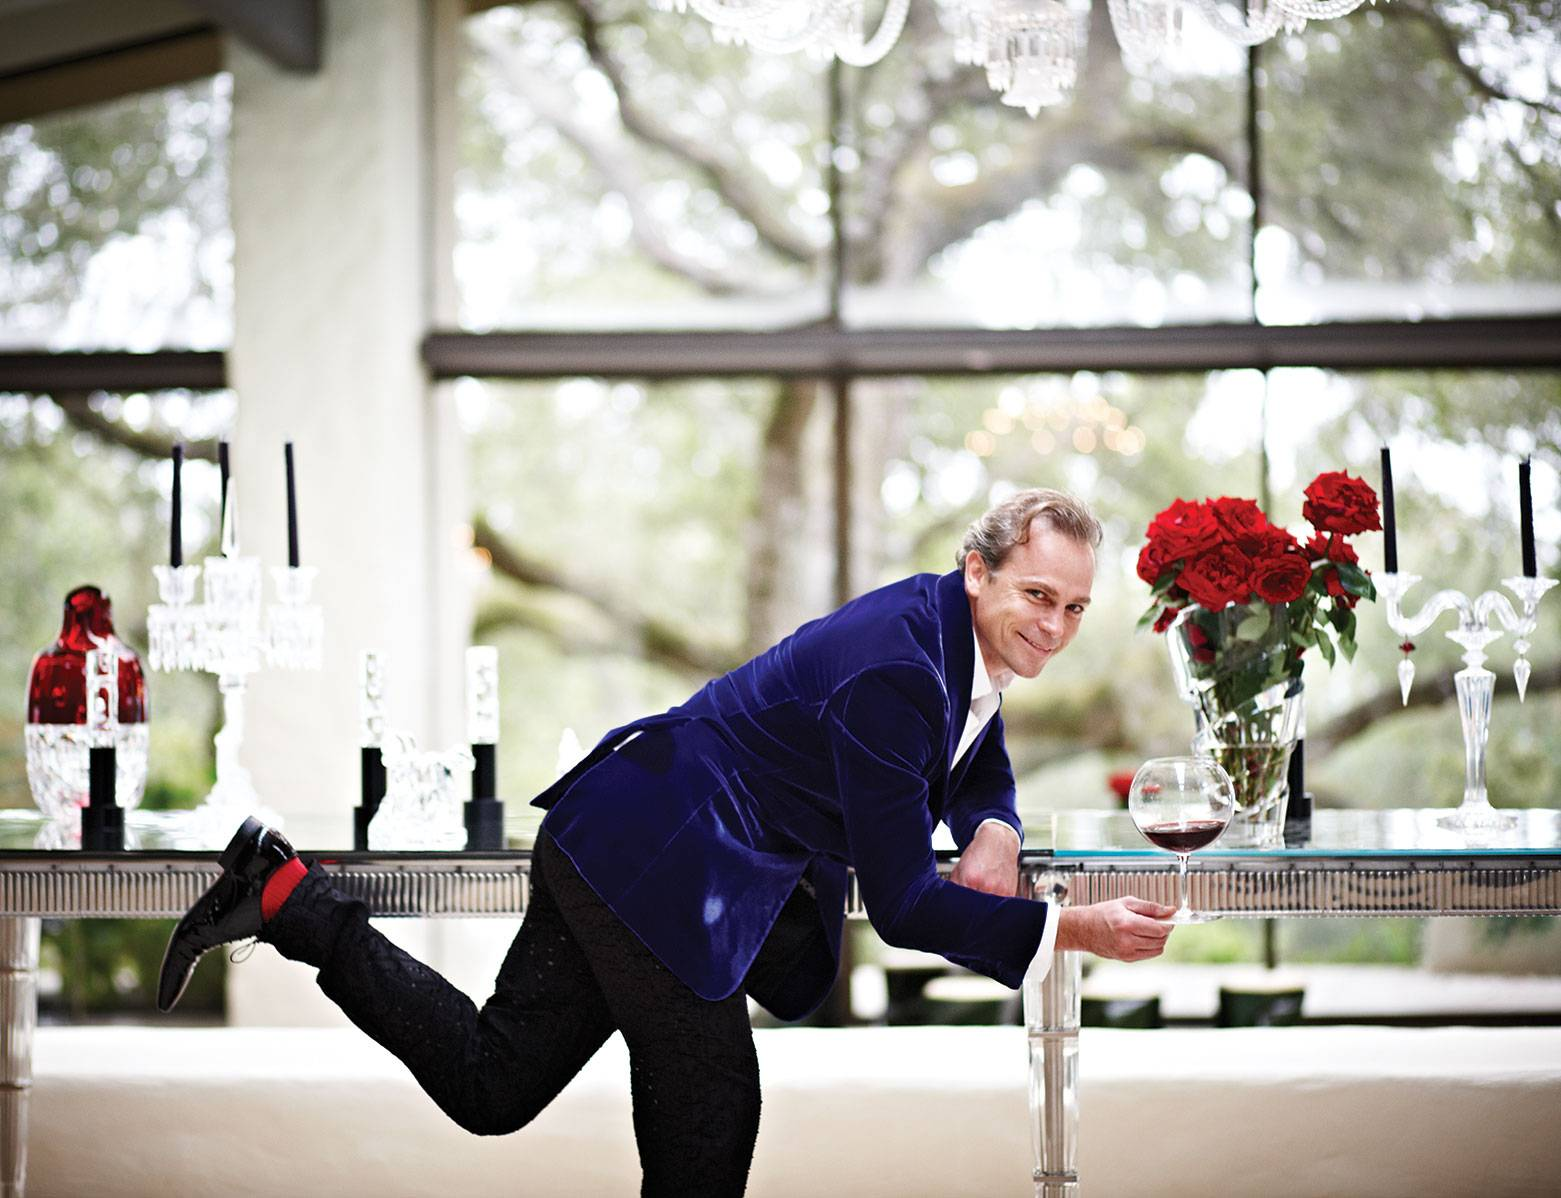 Jean-Charles-Boisset-at-Home,-Credit-Brad-Mollath